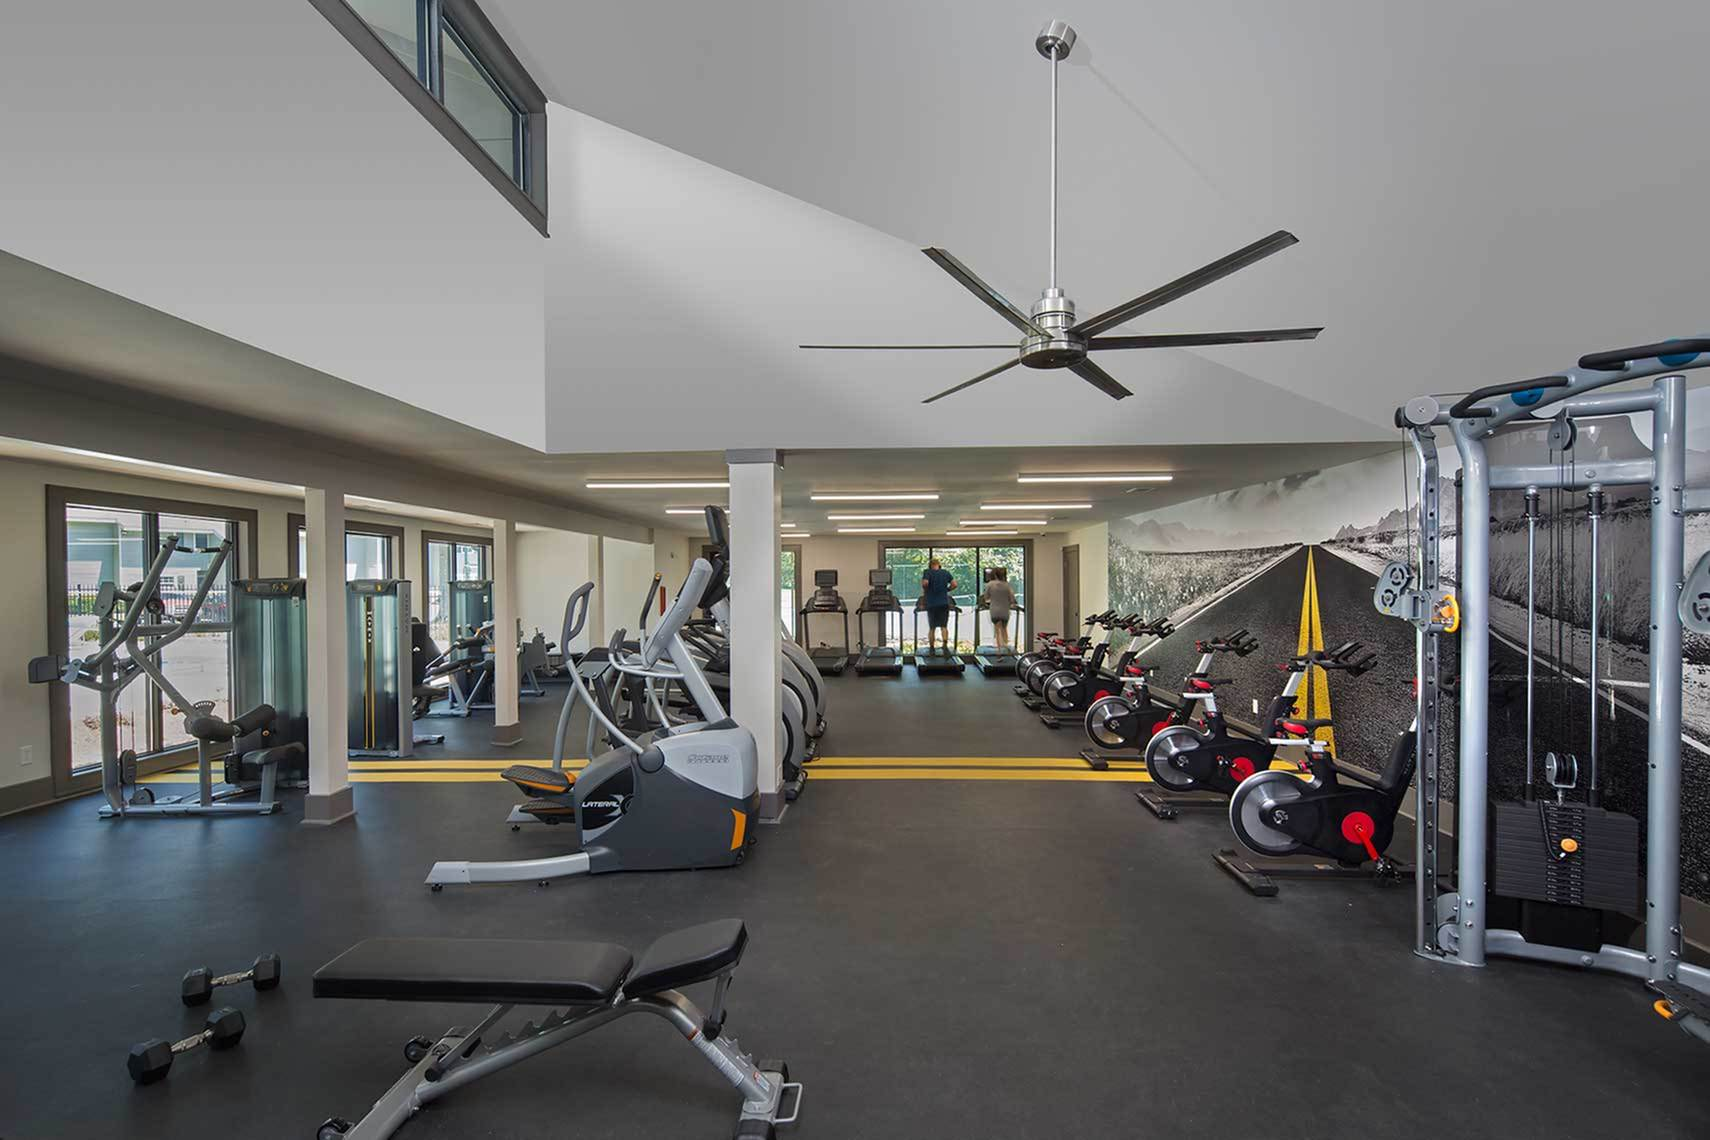 Image of 24 Hr Fitness Center for Corners at Holcomb Bridge